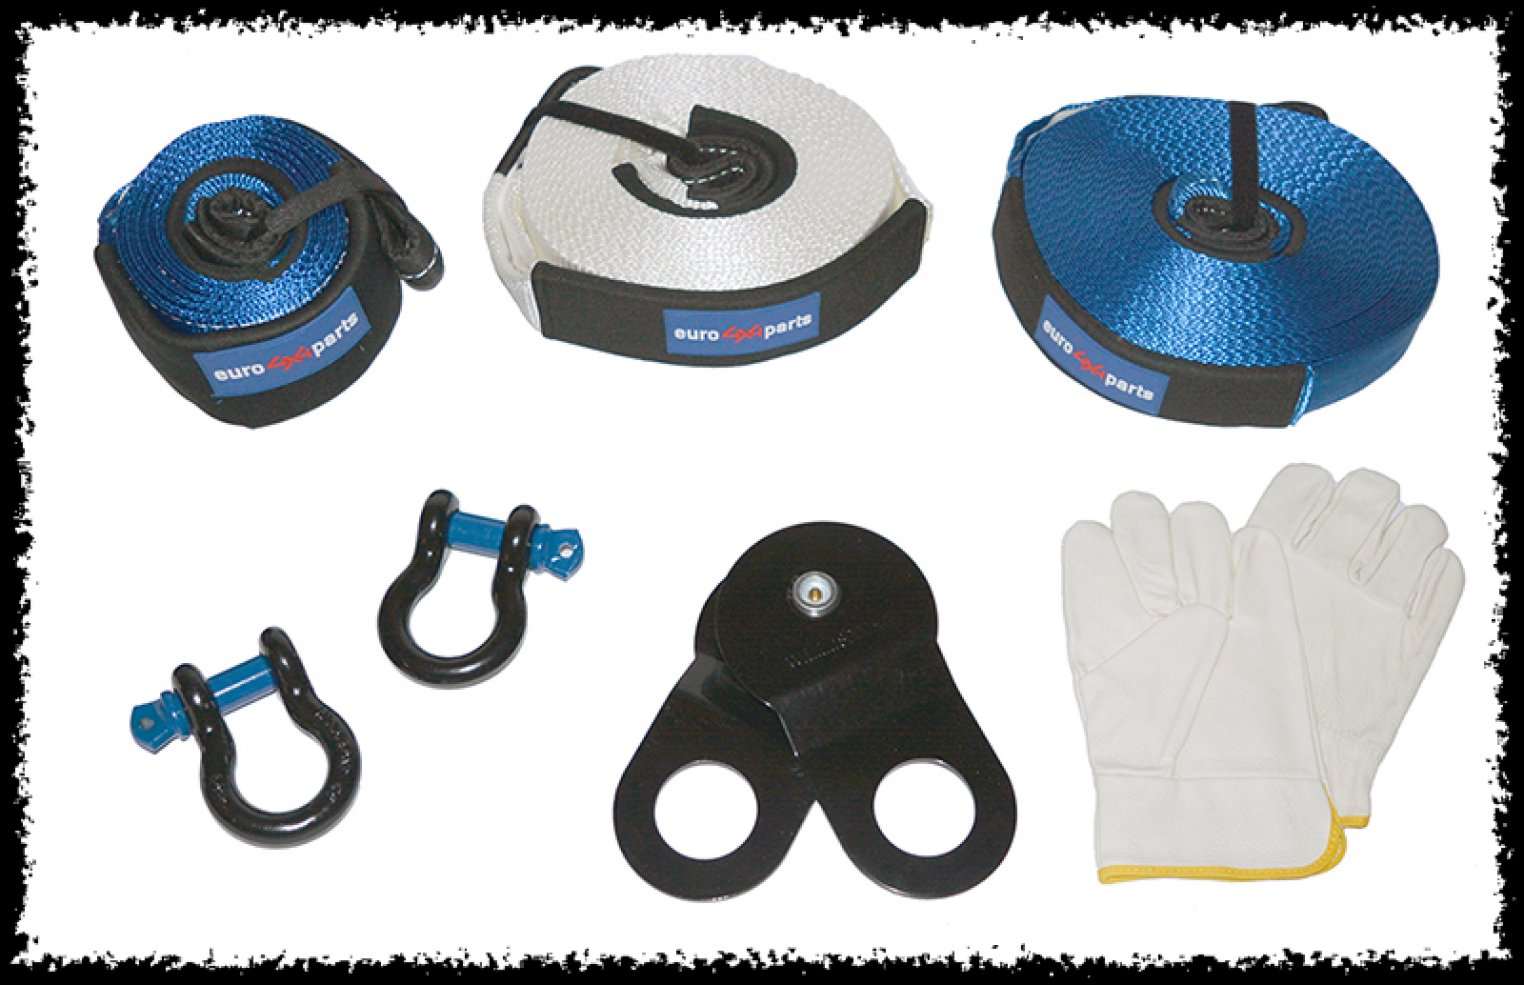 Kit de treuillage chez Euro4x4parts